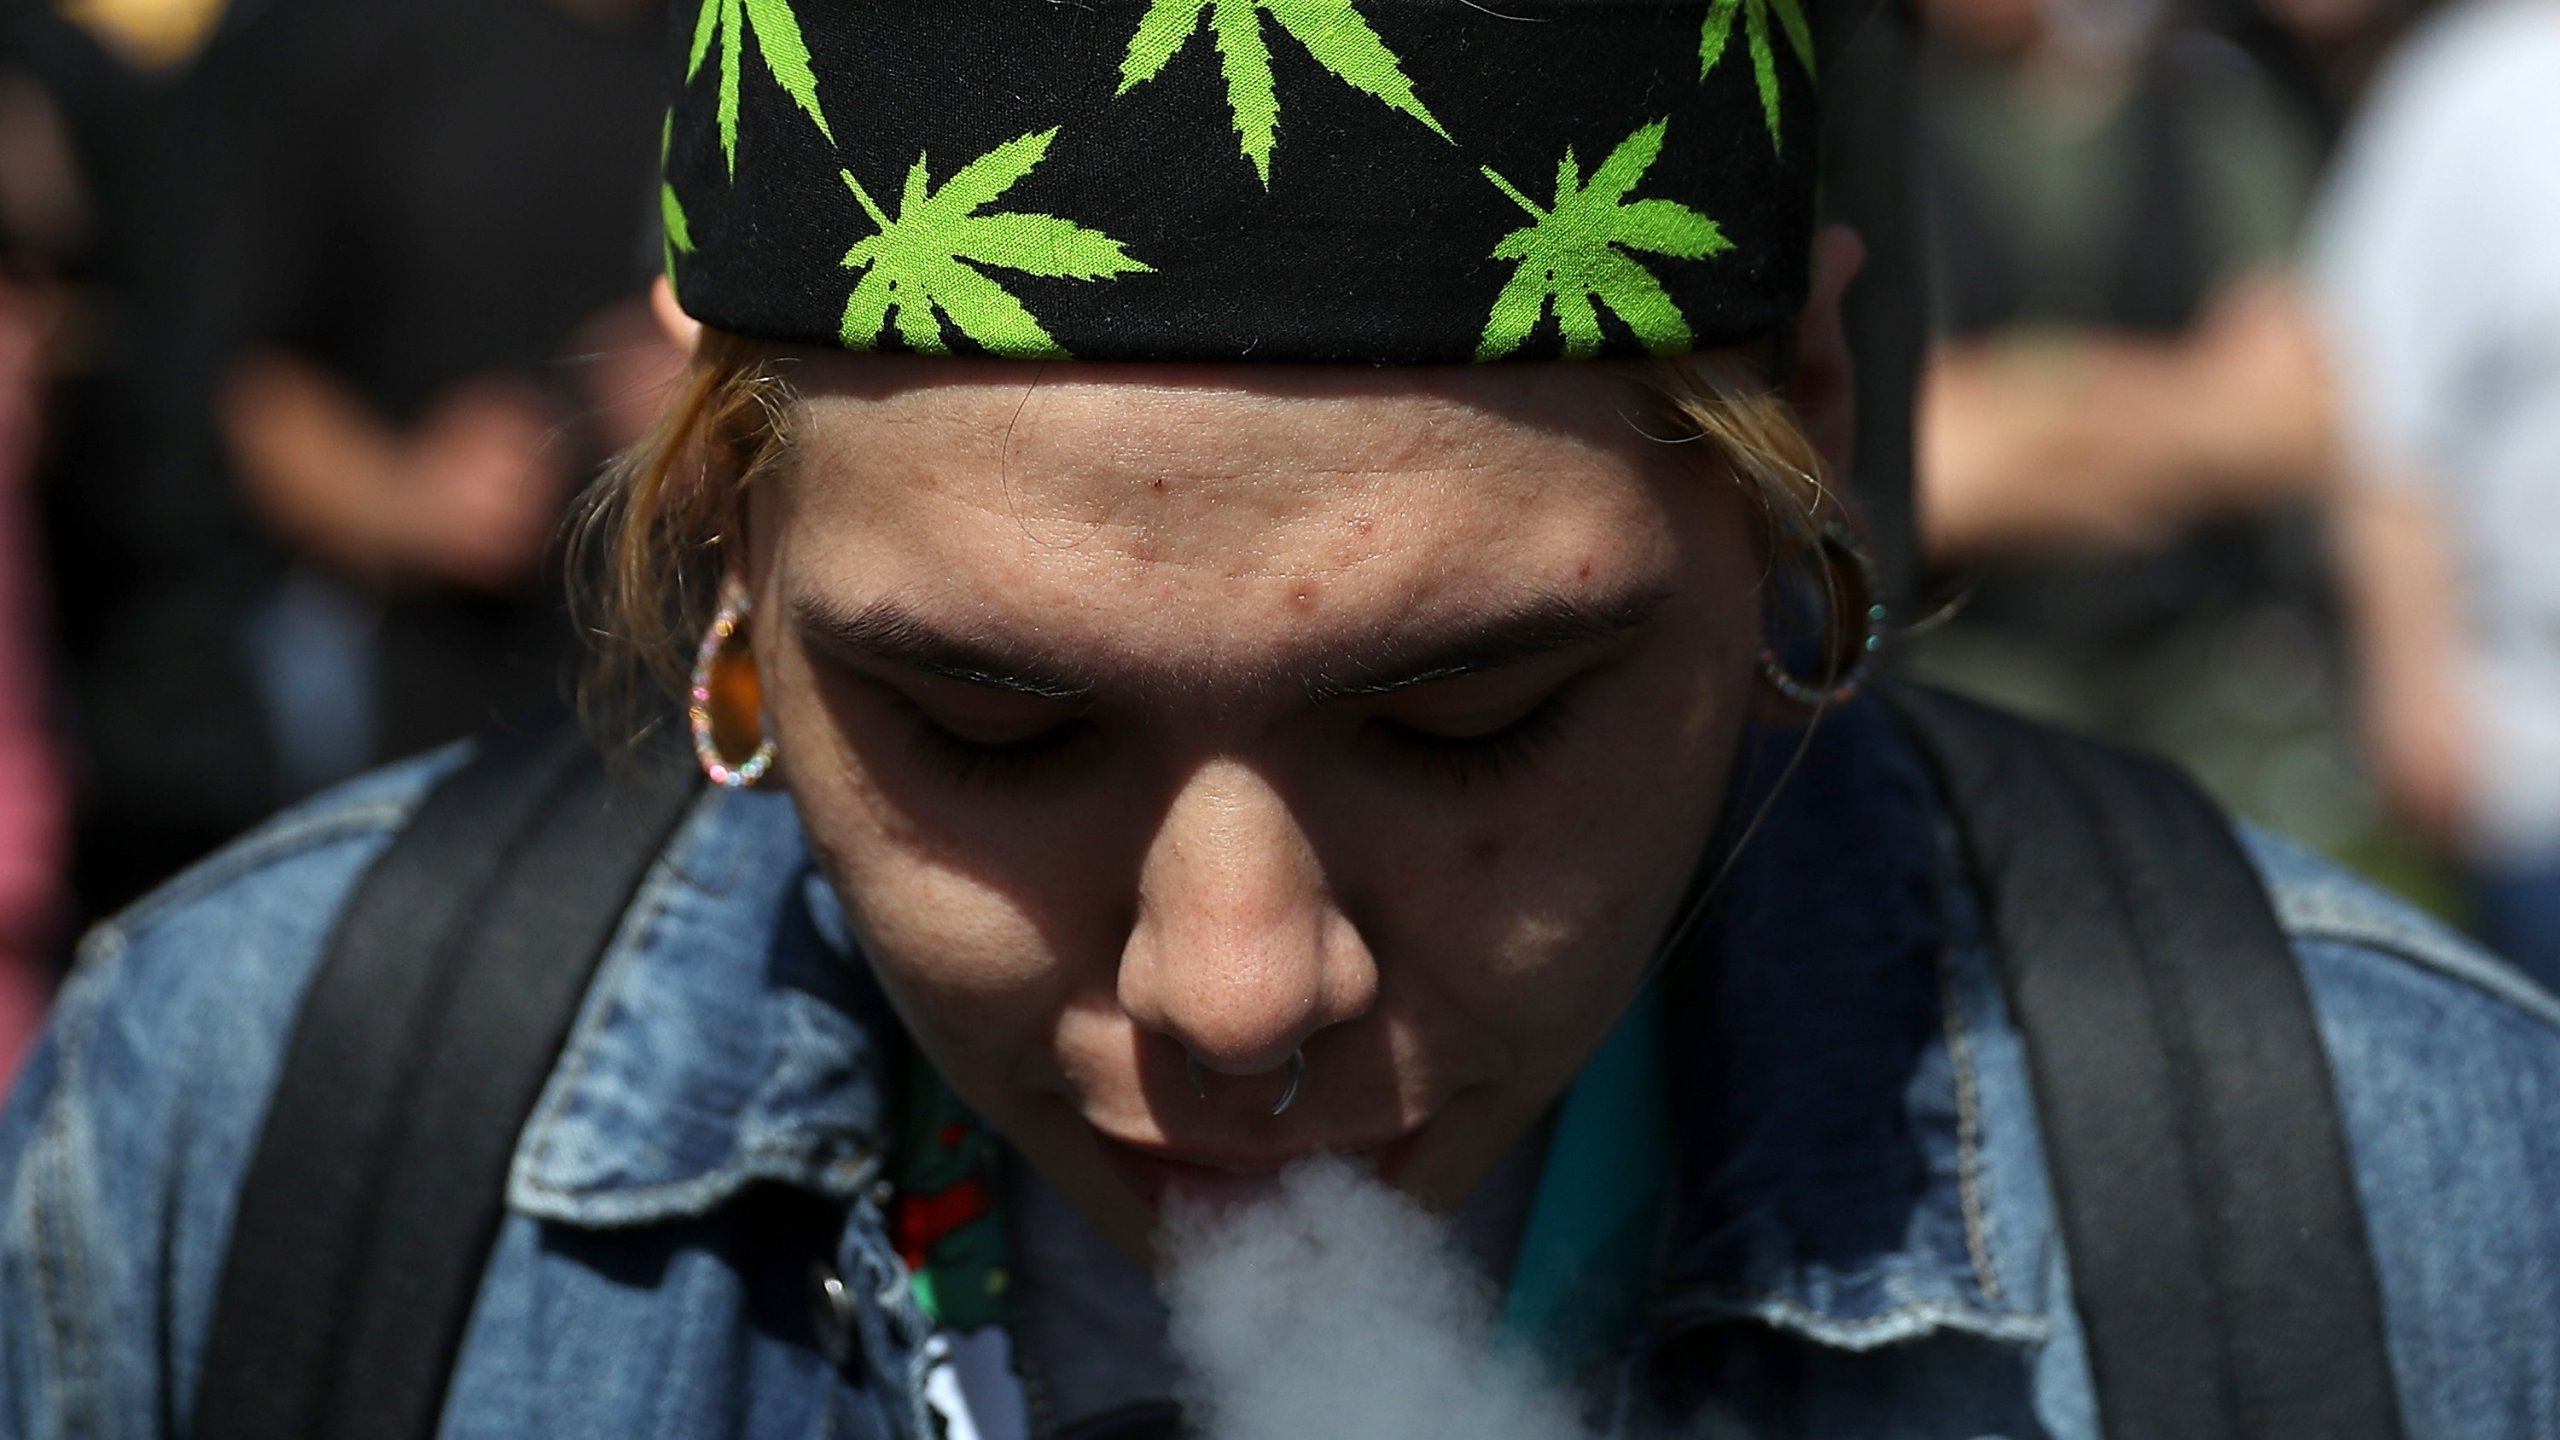 A marijuana user blows smoke after taking a hit from a bong during a 420 Day celebration on 'Hippie Hill' in Golden Gate Park on April 20, 2018, in San Francisco. (Credit: Justin Sullivan/Getty Images)